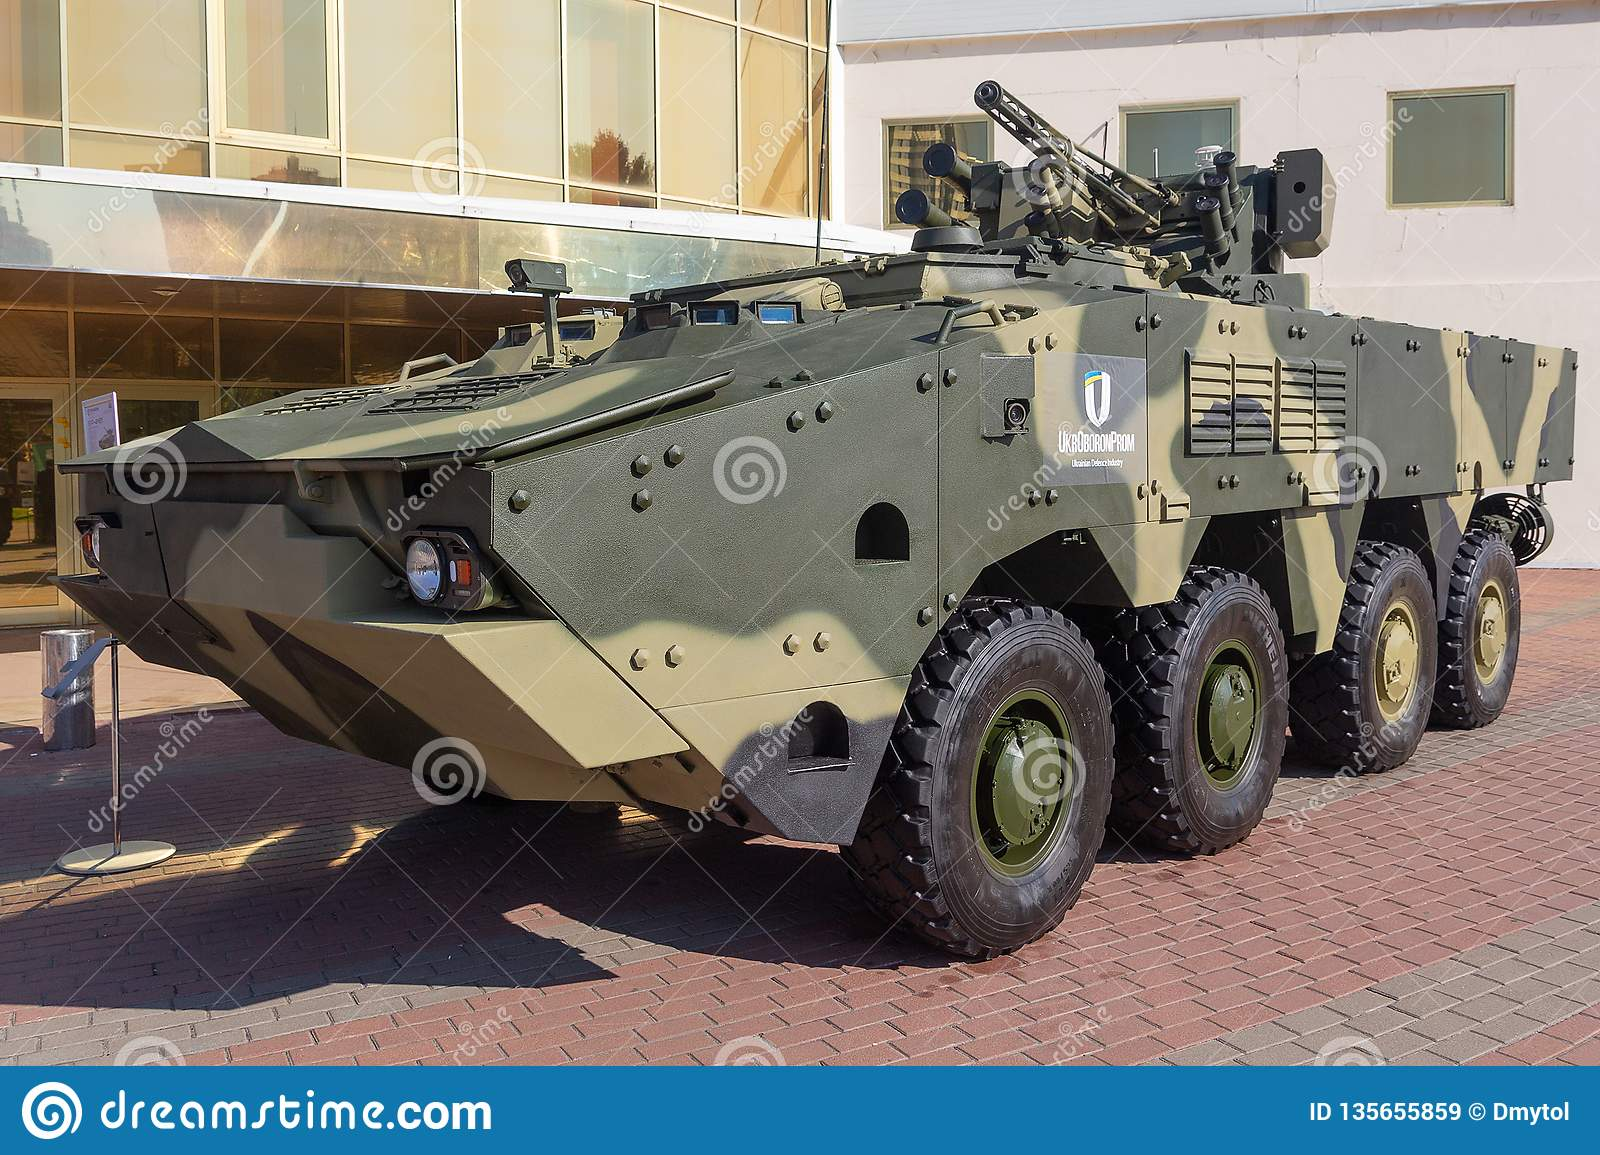 Kiev, Ukraine - October 10, 2018: Armored personnel carrierf BTR-4 the Ukrainian production at the Weapon